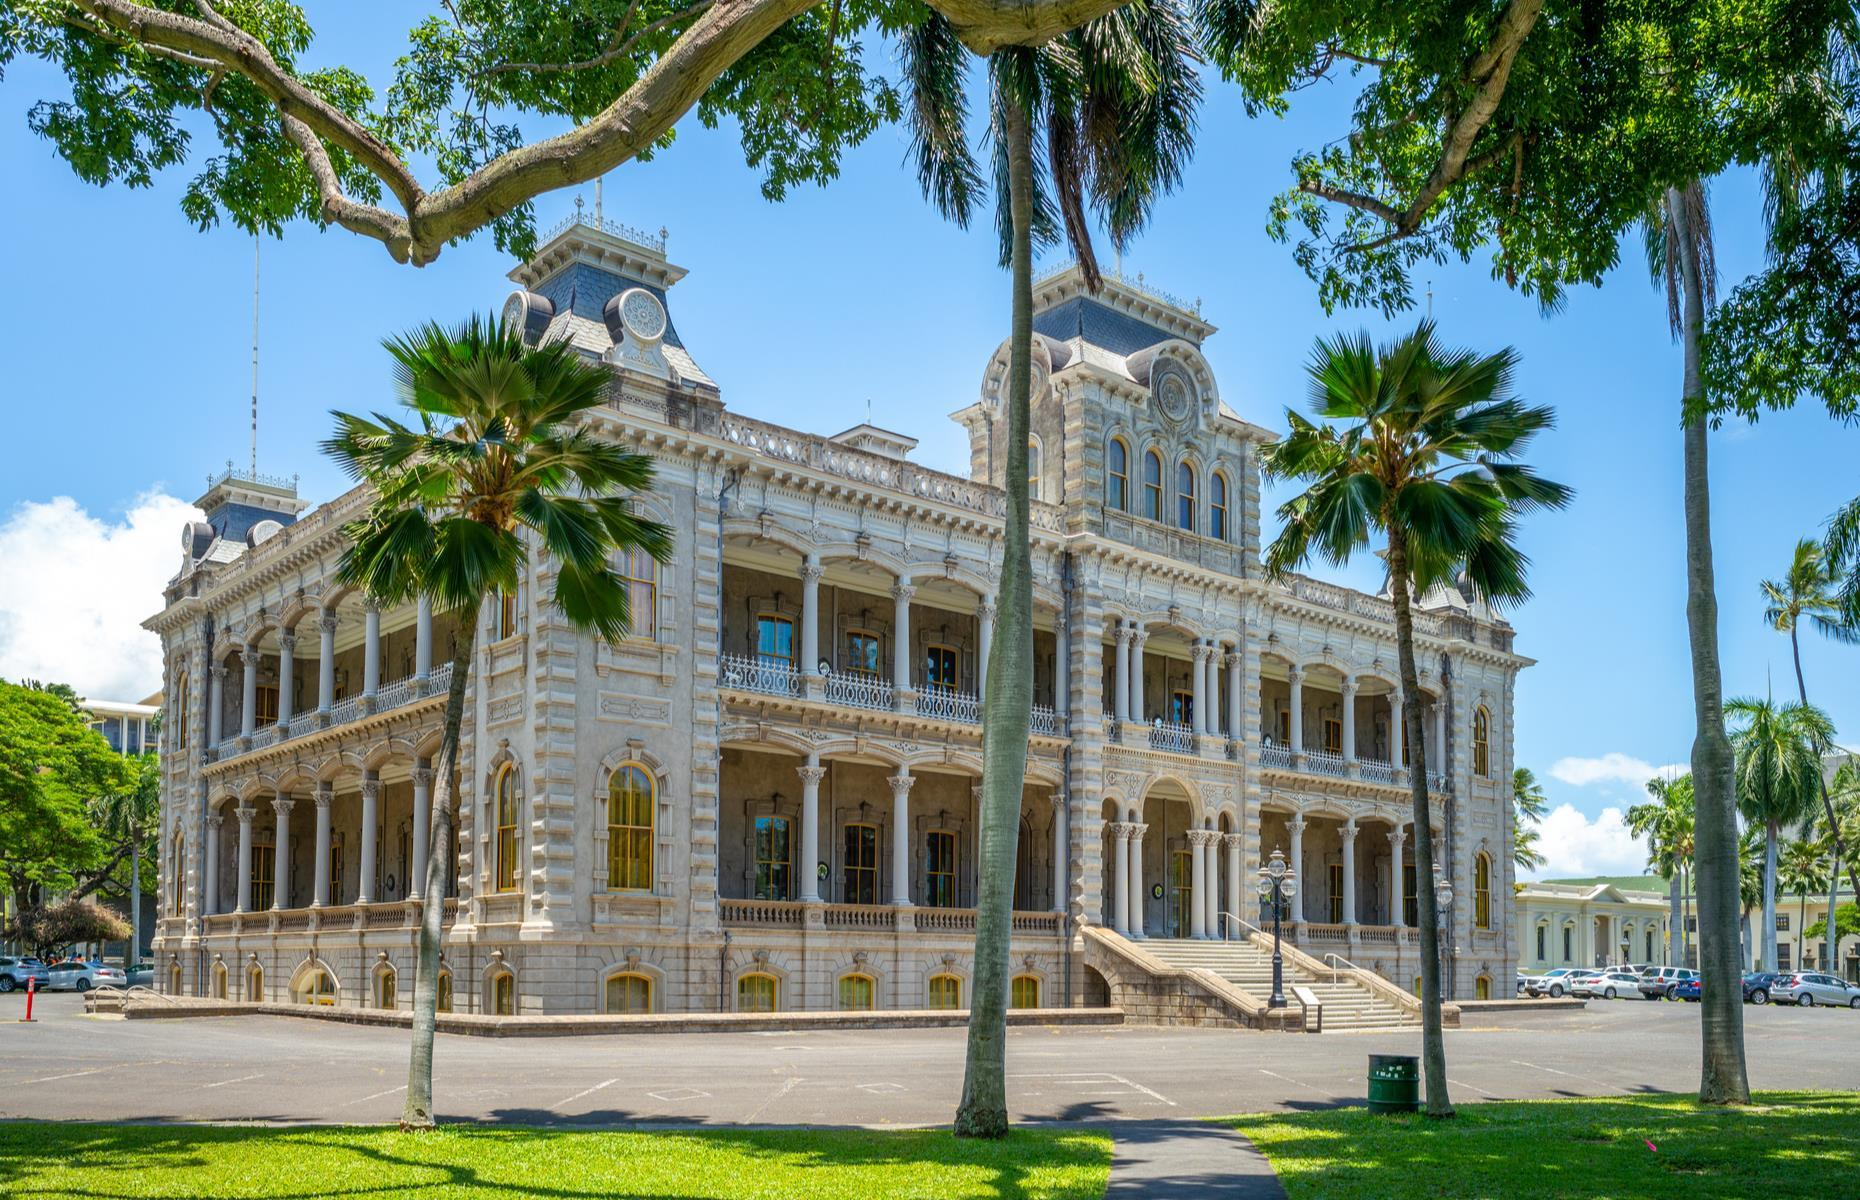 Slide 13 of 31: In the late 1800s, Honolulu's Iolani Palace was the official home of the Hawaiian monarchy. However, its life of royalty didn't last long as a coup saw the royal family overthrown in 1891. As the islands were transferred into a US state, Iolani Palace went from being a royal residence to functioning as a capitol building to, finally, disrepair. In 1978, after stunning renovations, the first two floors were opened to the public in all of their original grandeur. Discover more American castles you probably didn't know existed.